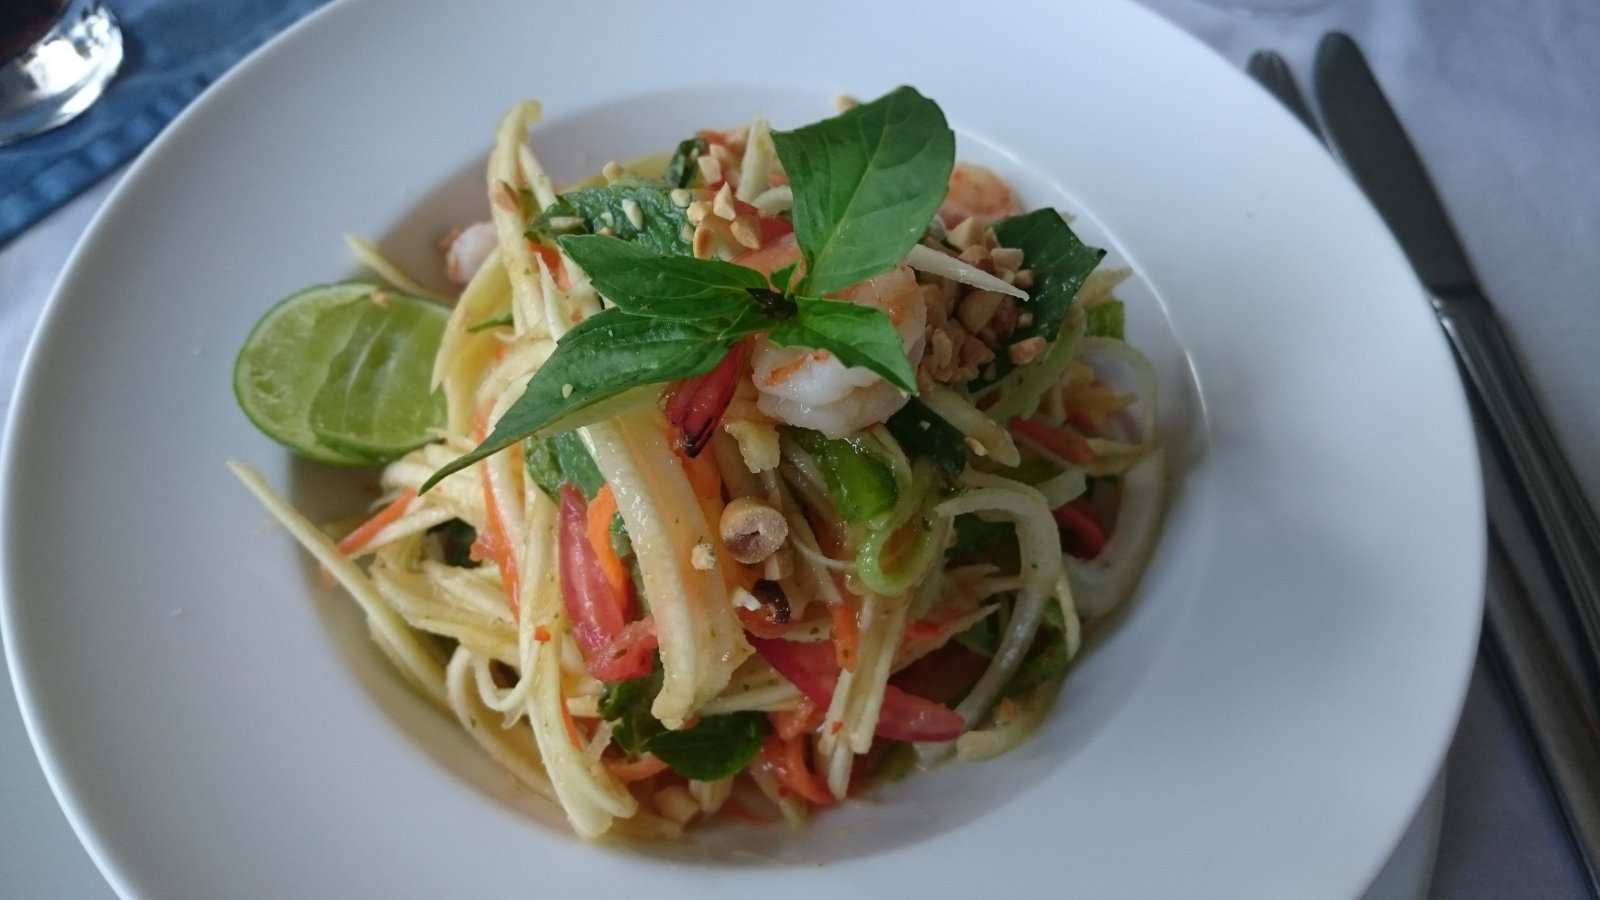 Khmer green mango salad is refreshing, zesty and one of our favorite traditional dishes from Cambodia